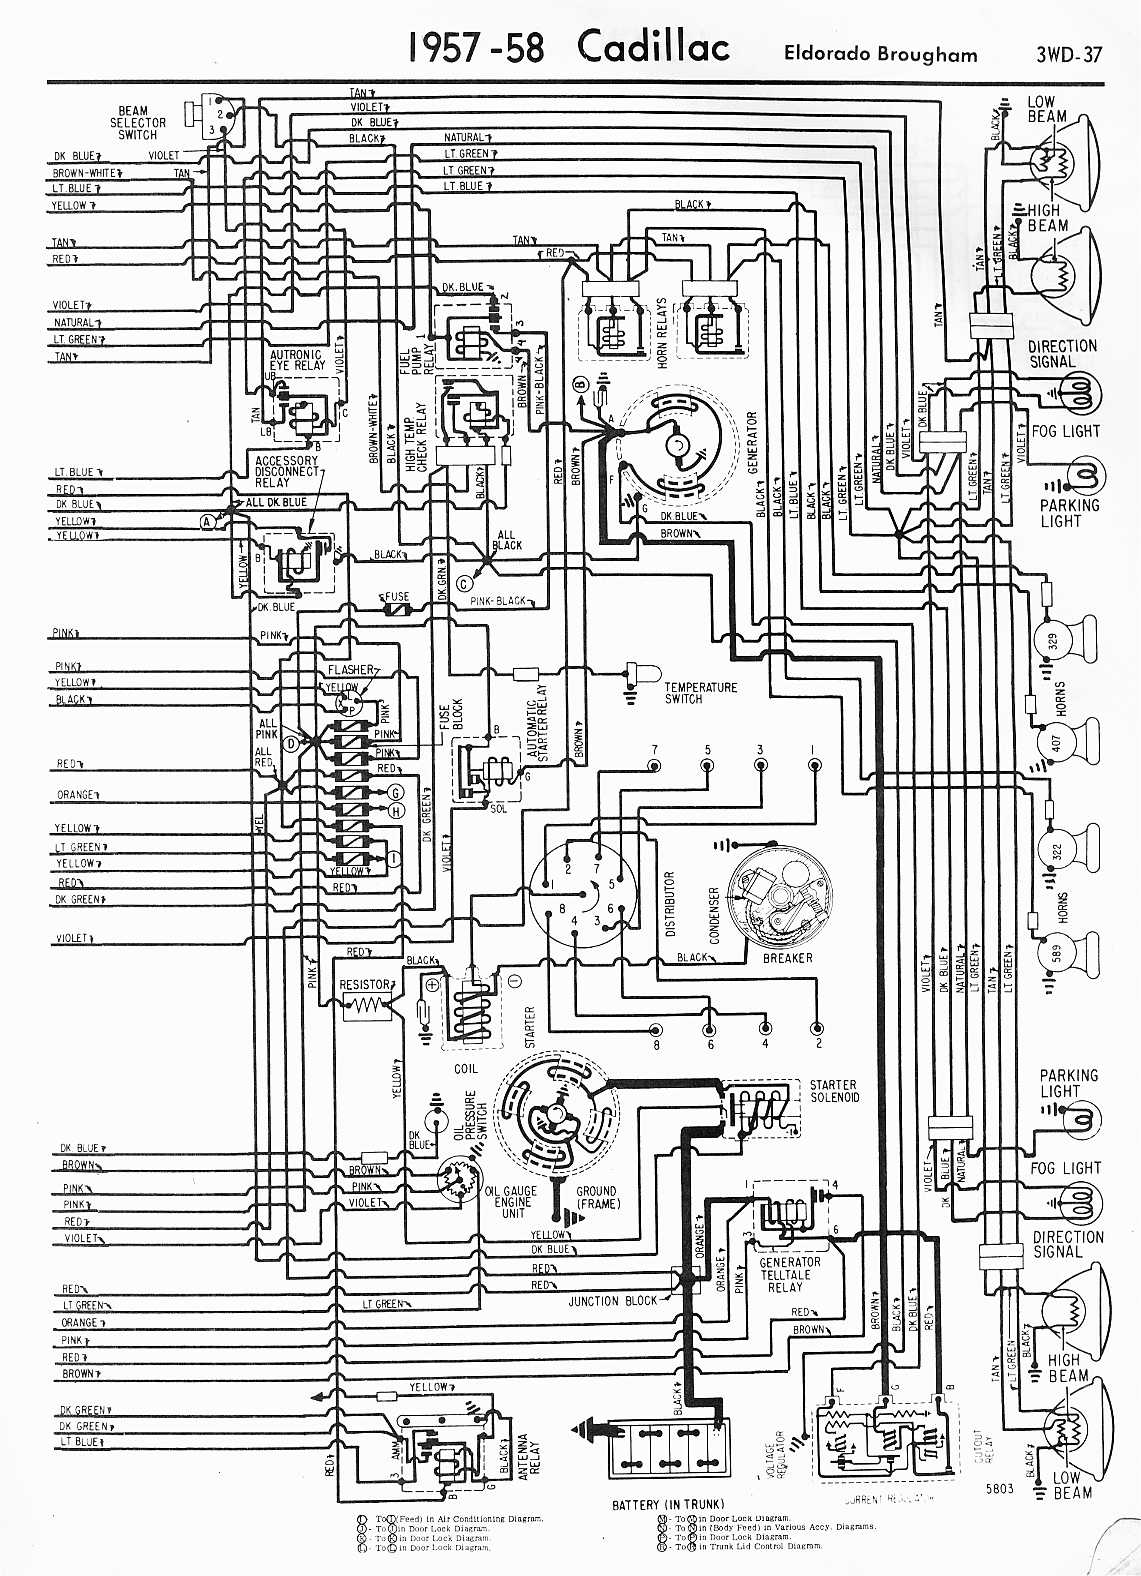 1957 cadillac wiring diagram wiring info u2022 rh cardsbox co 2000 Mitsubishi Eclipse Rear 2000 Chevy Silverado Rear